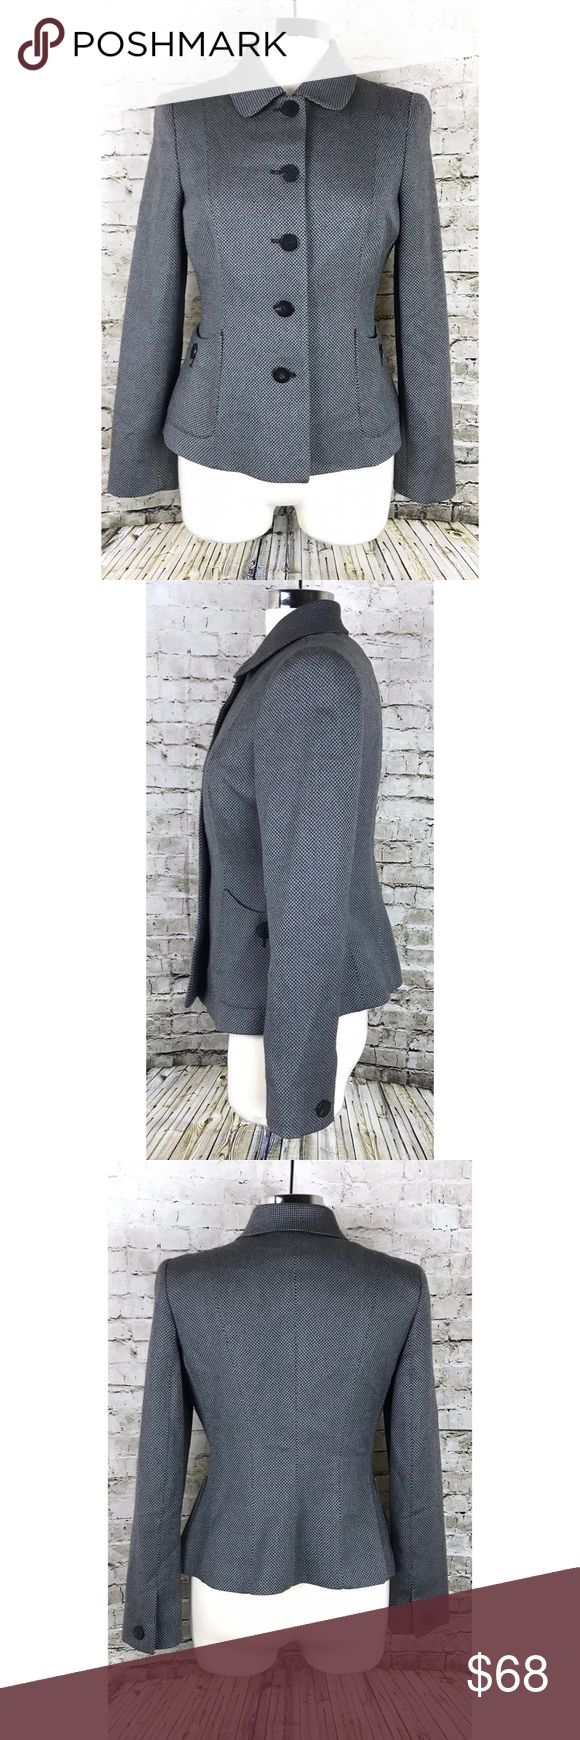 """Armani Collezioni Jacket Armani Collezioni Jacket. Button down jacket with button hip pockets and button cuffs.  Brown/Grey. Excellent conditions, no care tags. Measurements laying flat: 18.5"""" chest, approx 22.5"""" length. Armani Collezioni Jackets & Coats"""